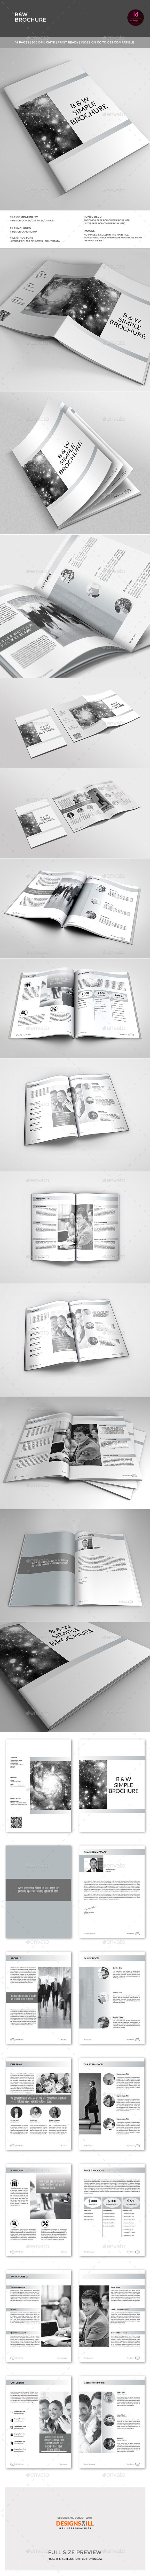 Black & White Minimal Brochure - Corporate Brochures